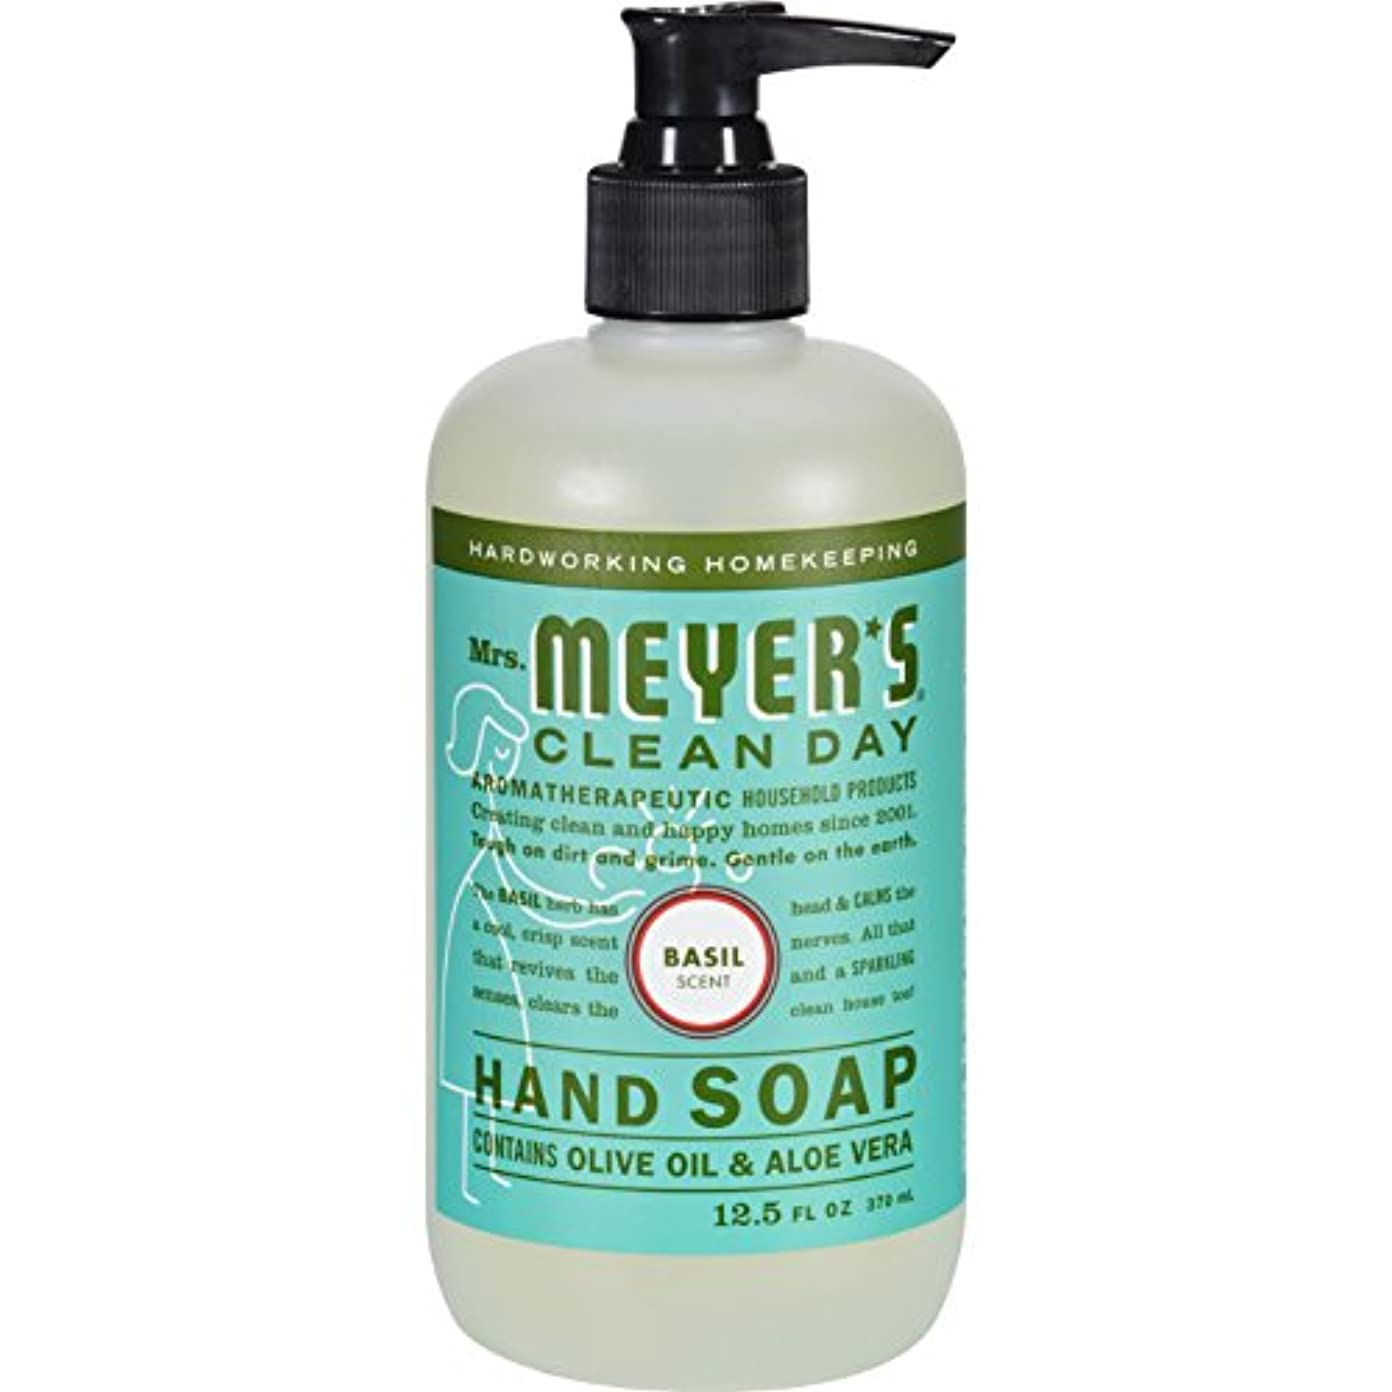 MRS. MEYER'S HAND SOAP,LIQ,BASIL, 12.5 FZ by Mrs. Meyer's Clean Day